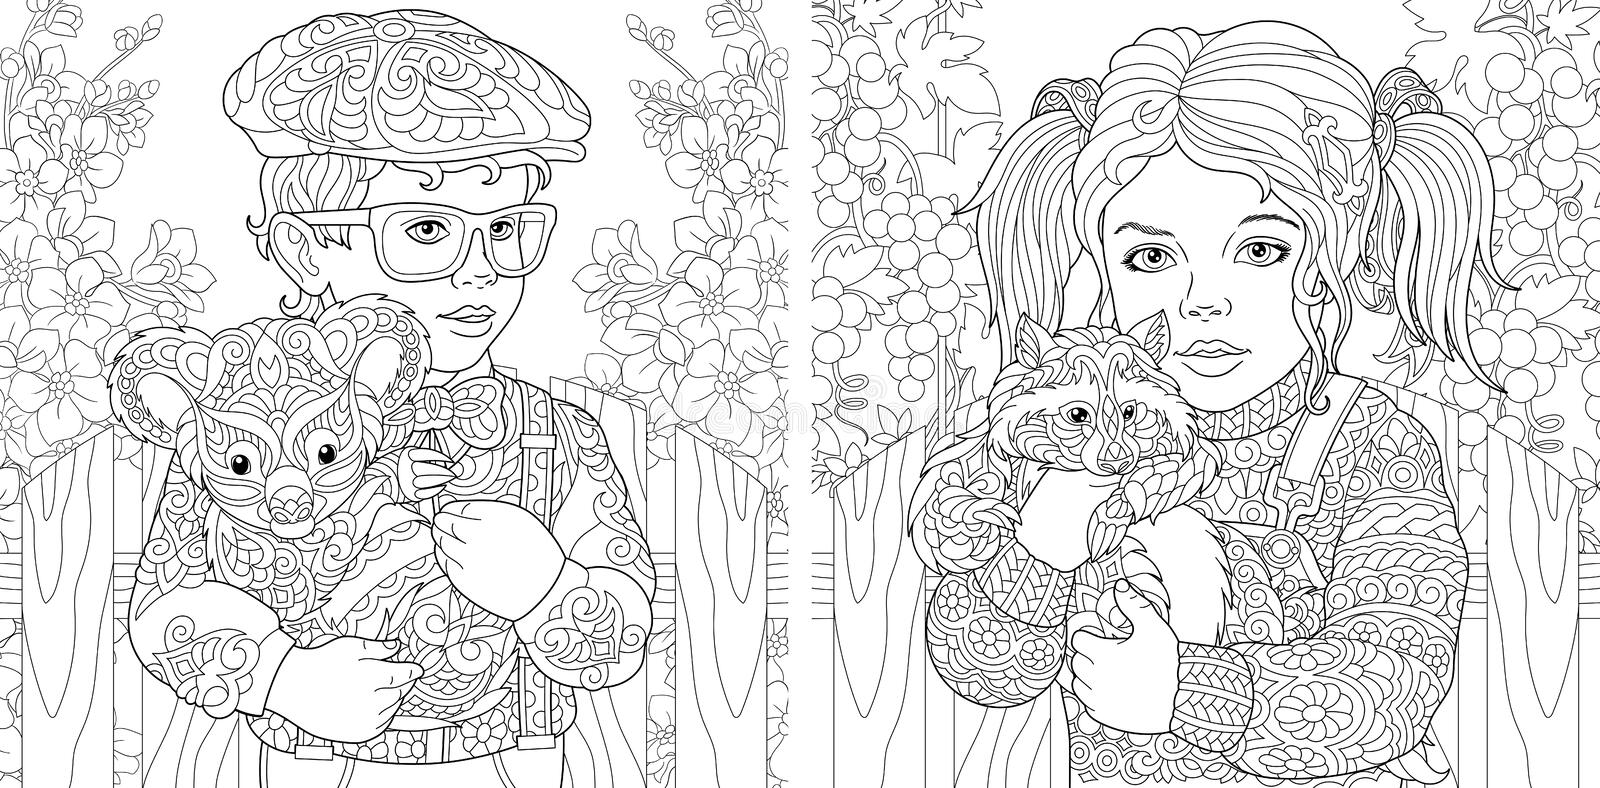 Coloring Pages. Coloring Book for adults. Colouring pictures with kids holding furry animals drawn in zentangle style. Vector stock image